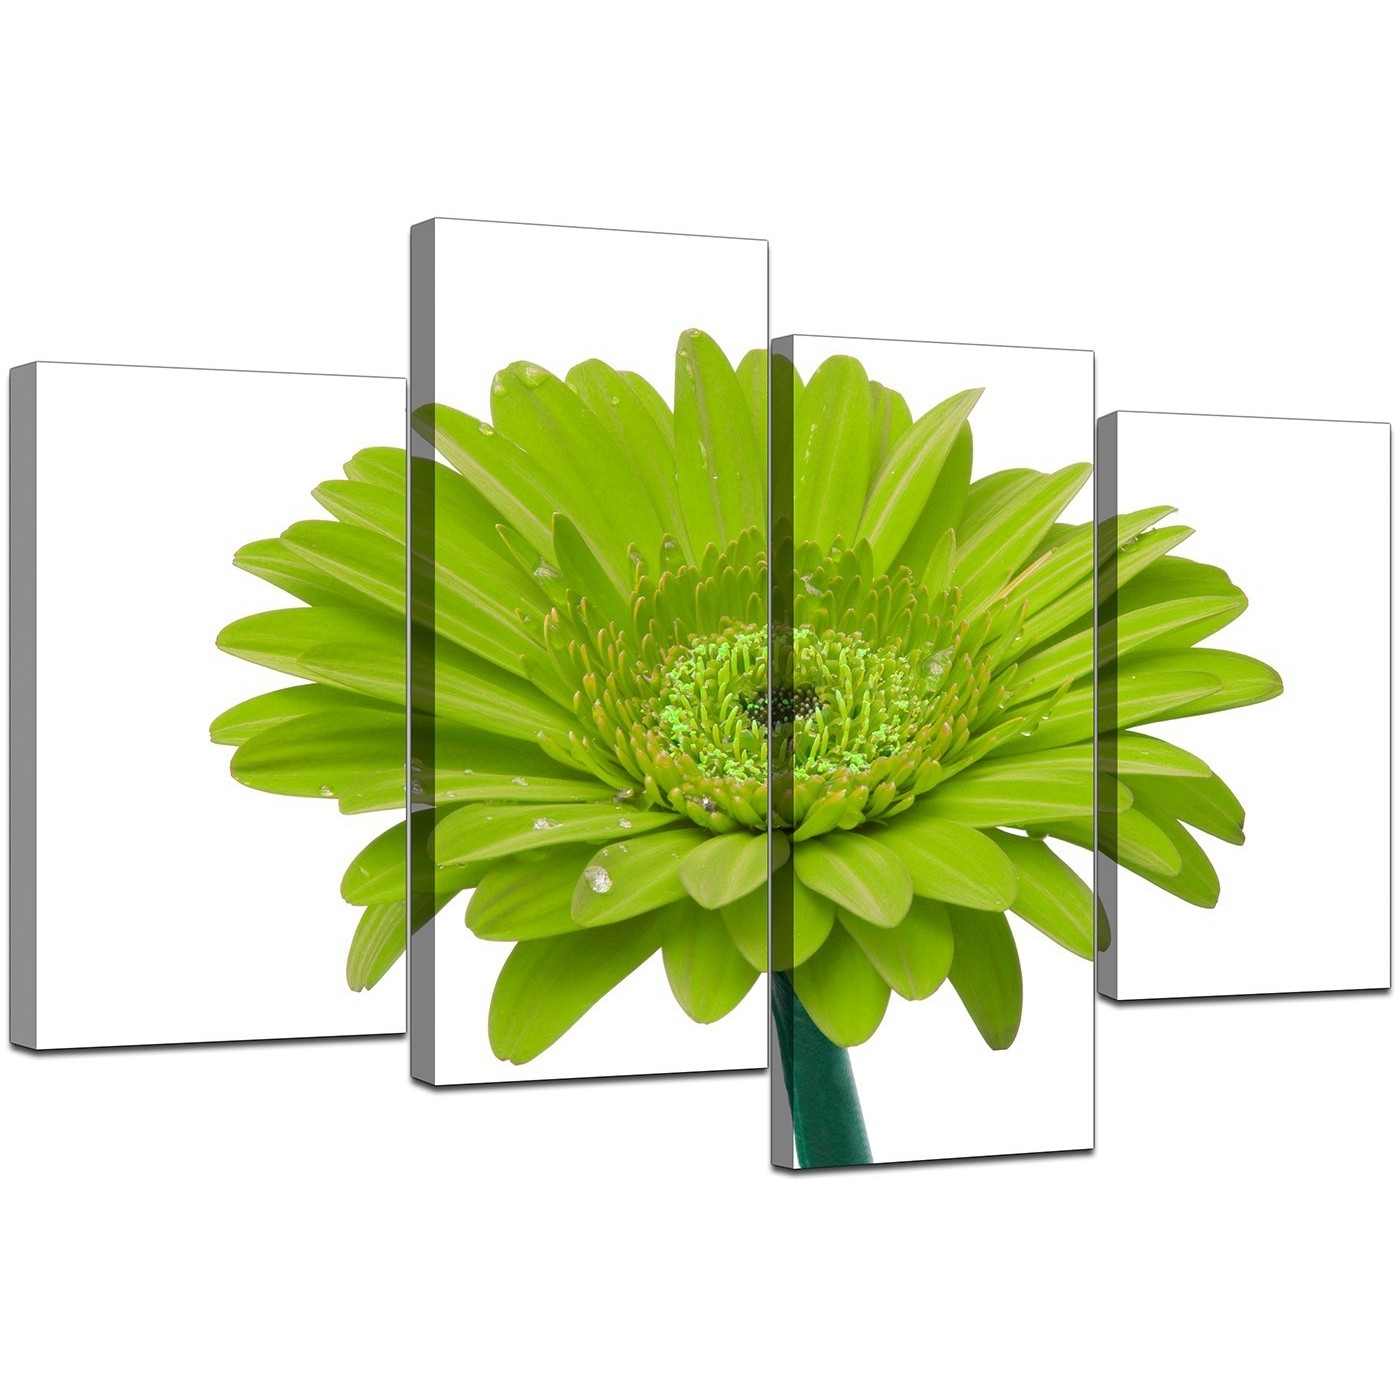 Canvas Wall Art Of Flower In Lime Green For Your Living Room In Green Wall Art (View 5 of 20)